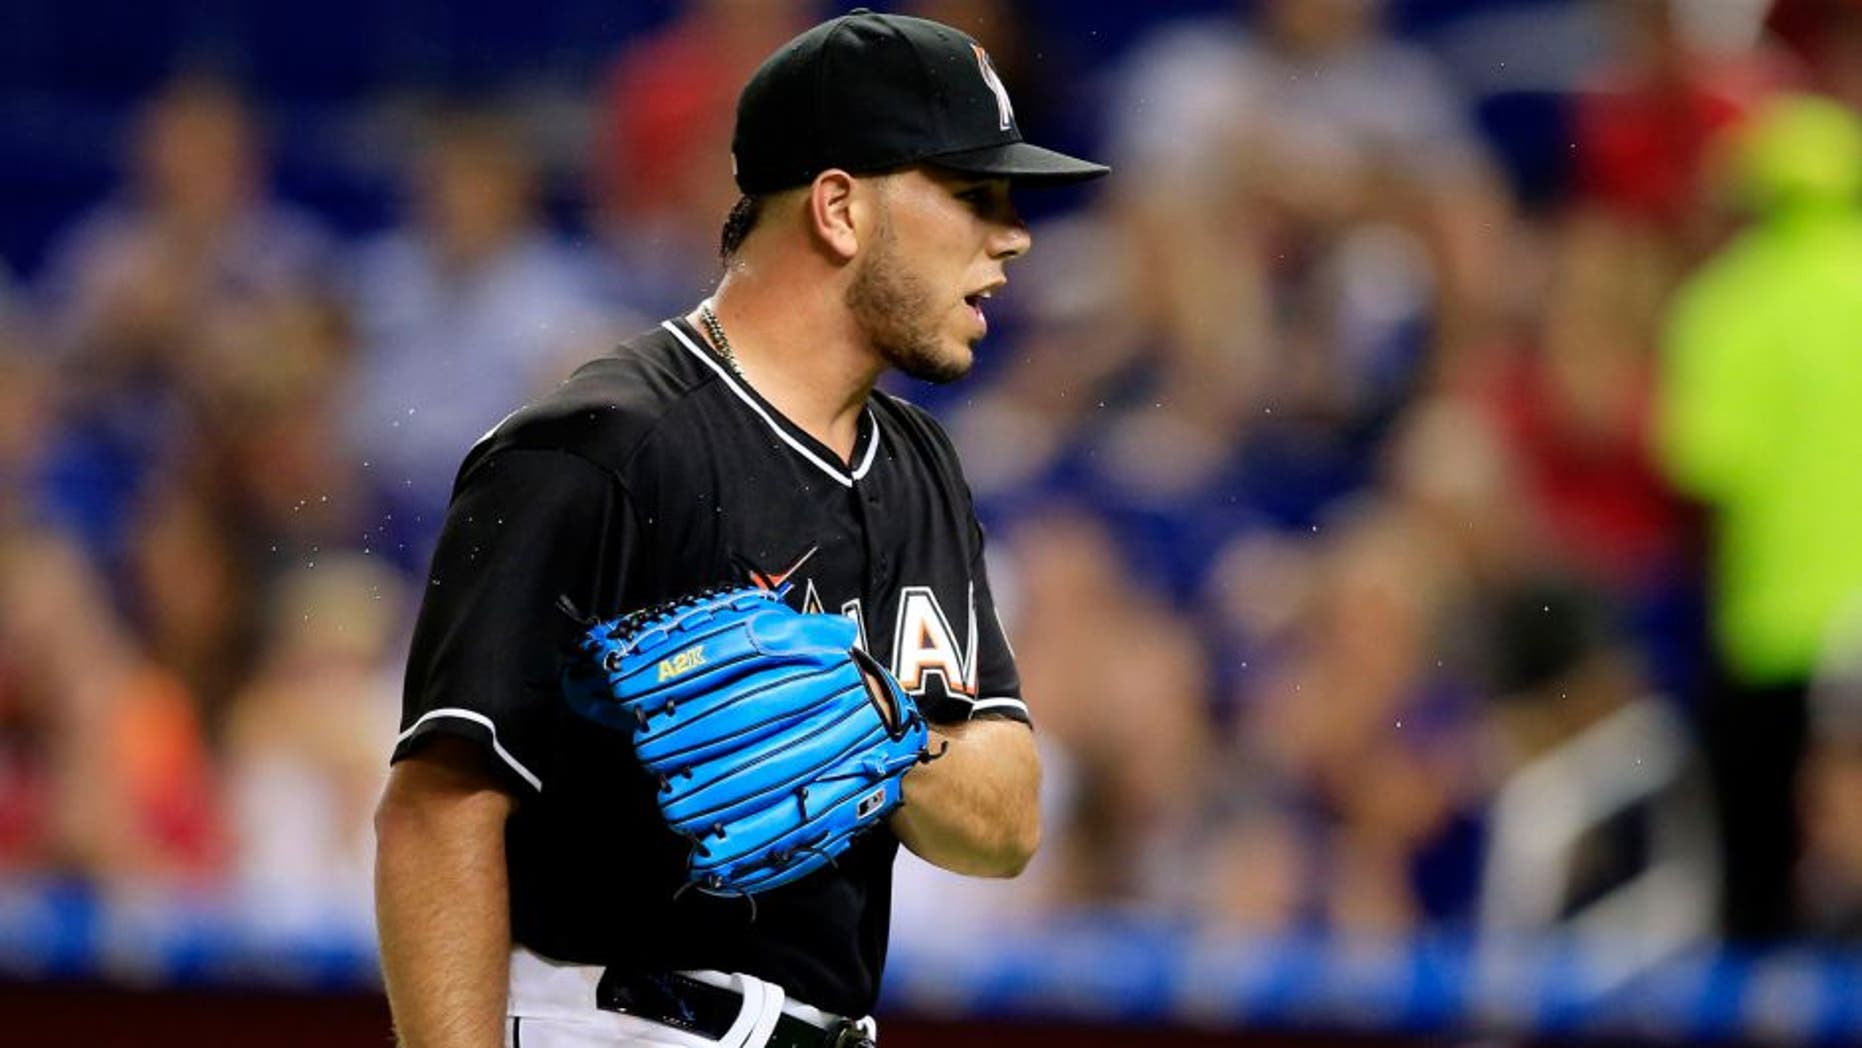 Sep 12, 2015; Miami, FL, USA; Miami Marlins starting pitcher Jose Fernandez reacts in the first inning of a game at Marlins Park. Mandatory Credit: Robert Mayer-USA TODAY Sports